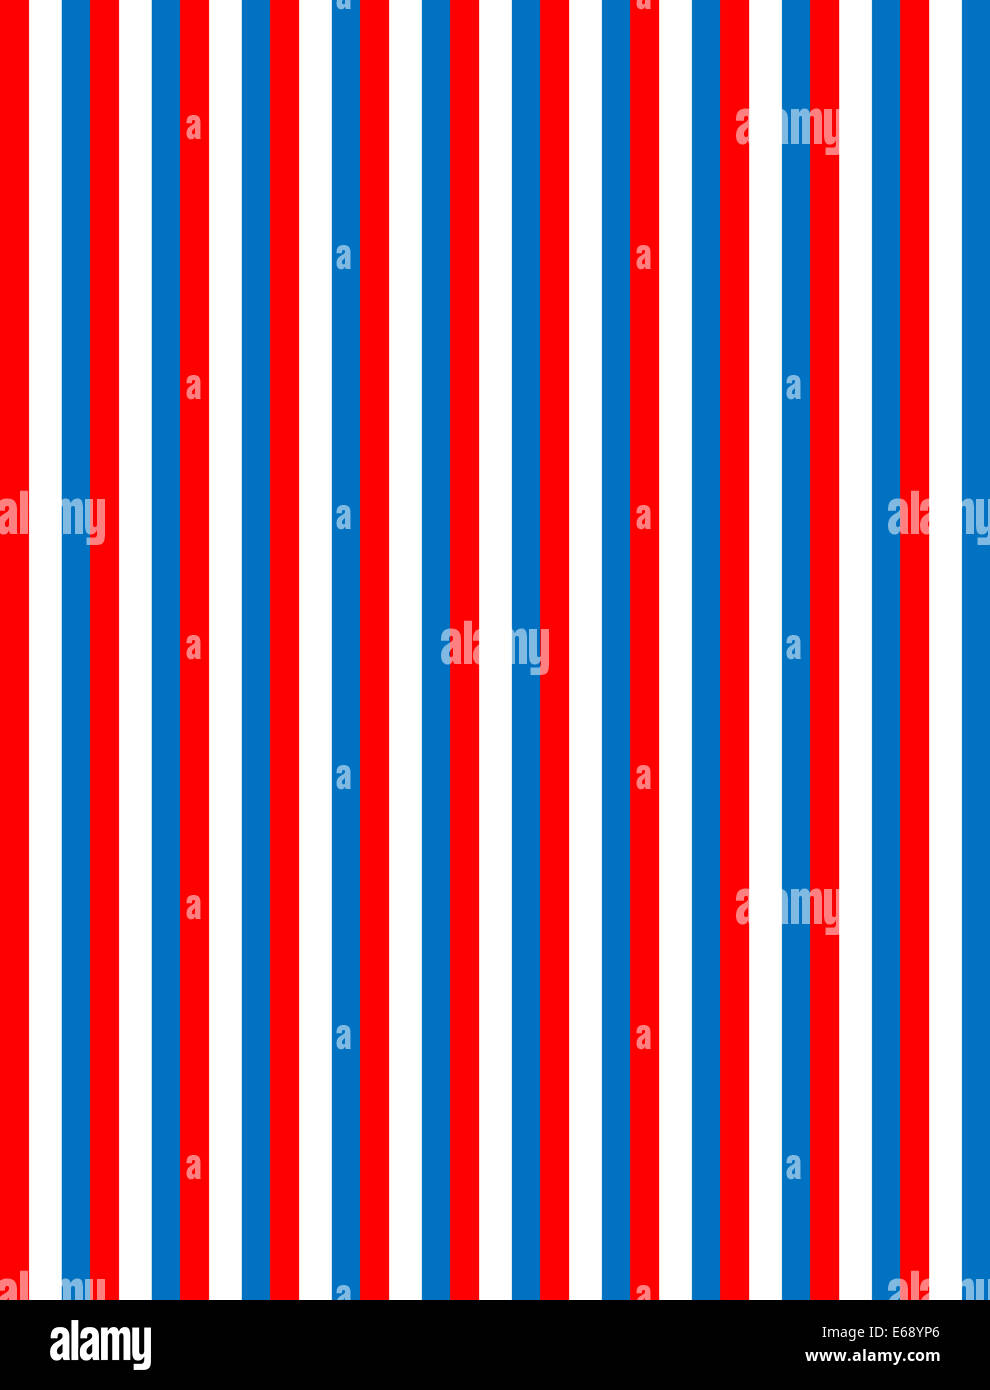 red white and blue patriotic vertical striped background stock photo alamy https www alamy com stock photo red white and blue patriotic vertical striped background 72726814 html